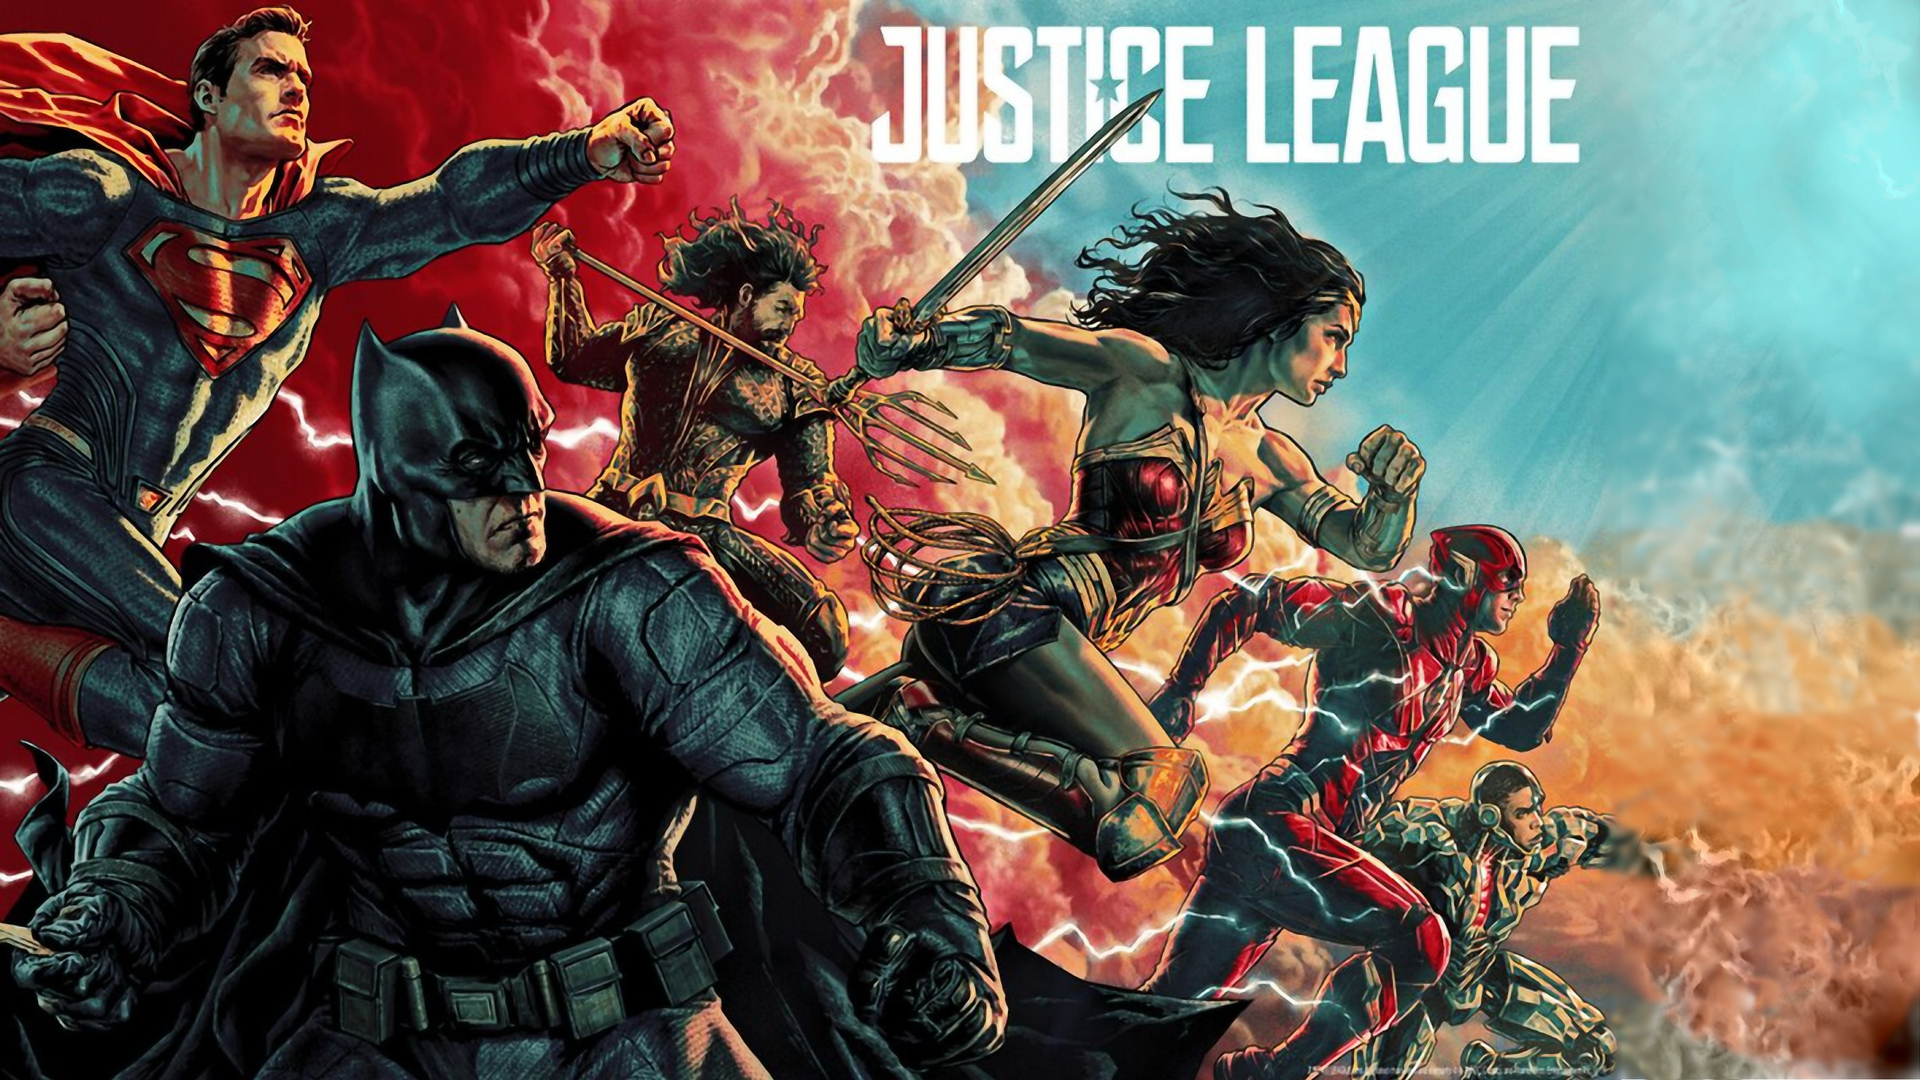 1920x1080 justice league poster 4k laptop full hd 1080p hd 4k